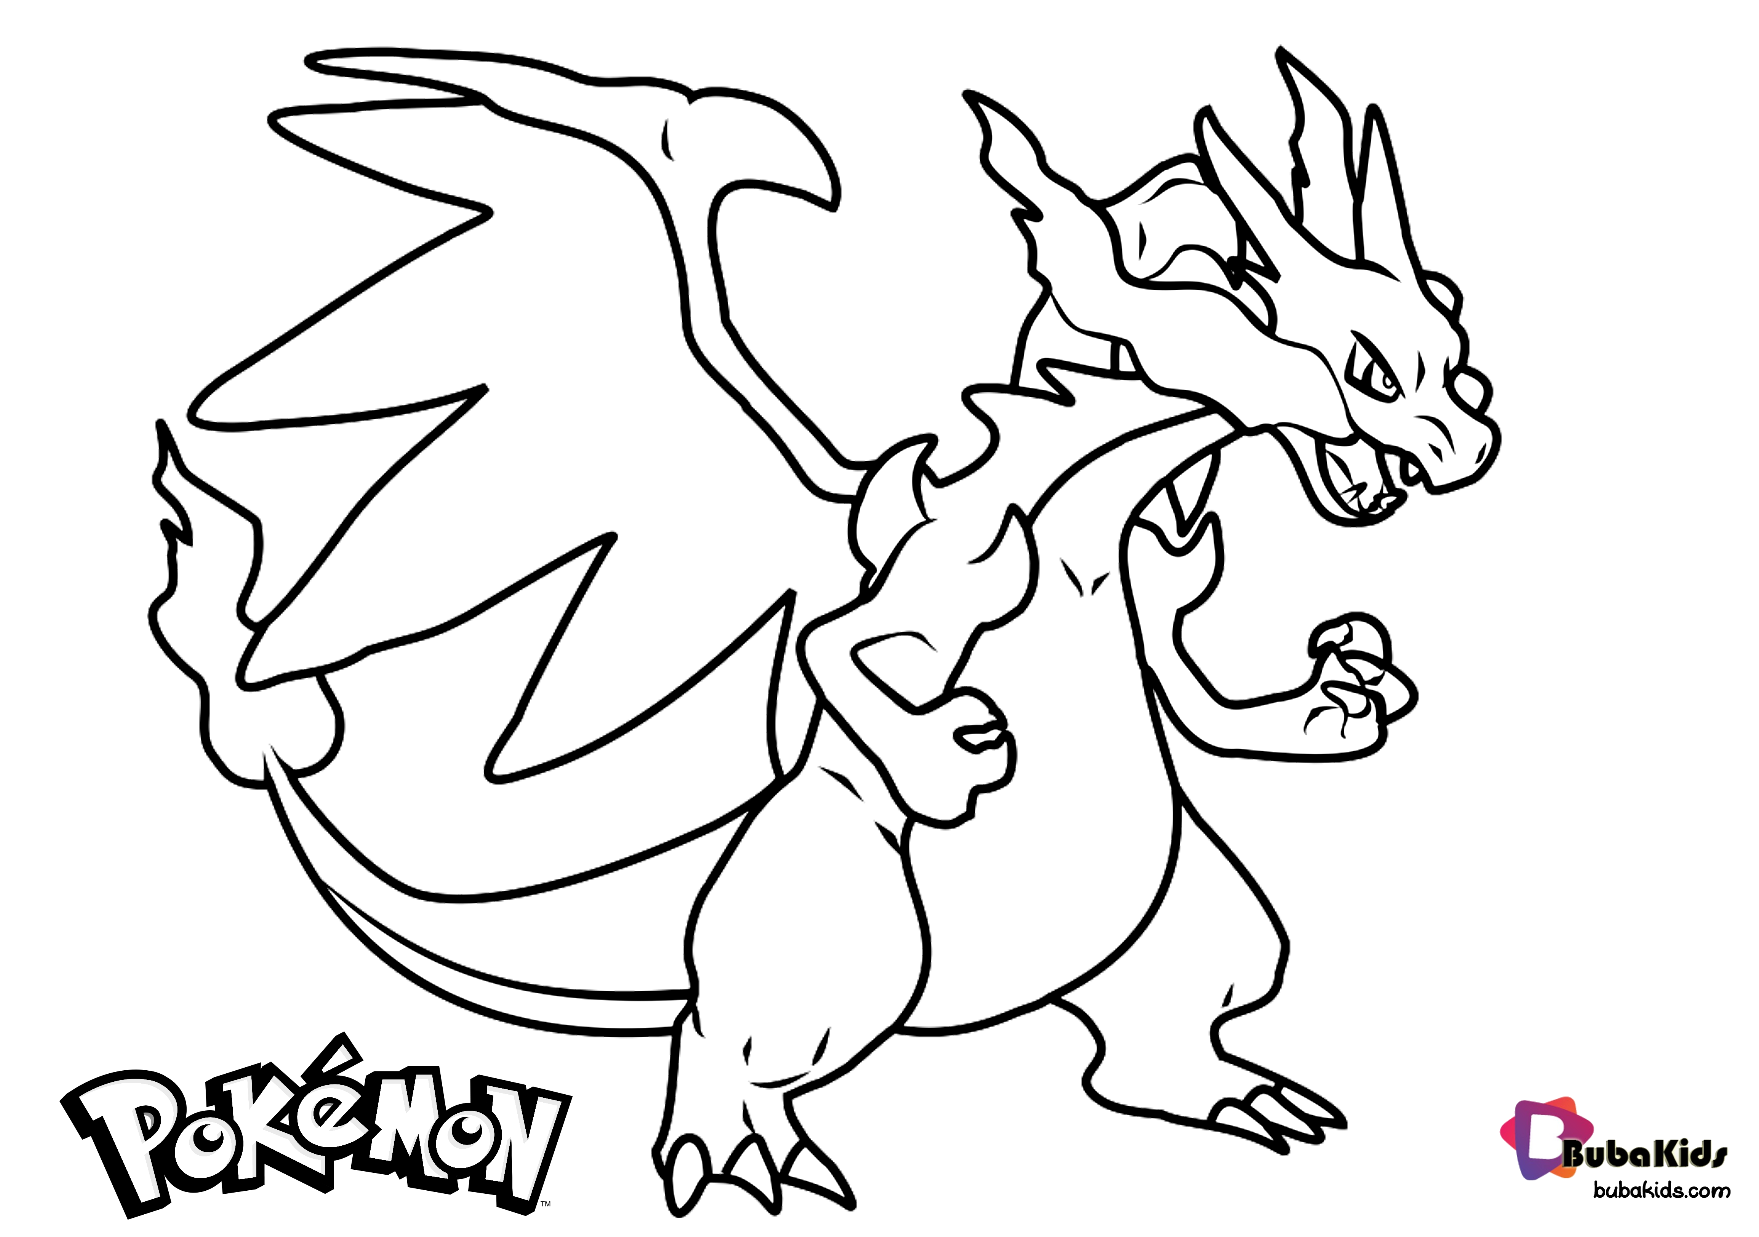 Free Download Pokemon Charizard Coloring Page Collection Of Cartoon Coloring Pages For Teenage Pr Cartoon Coloring Pages Coloring Pages Pokemon Coloring Pages